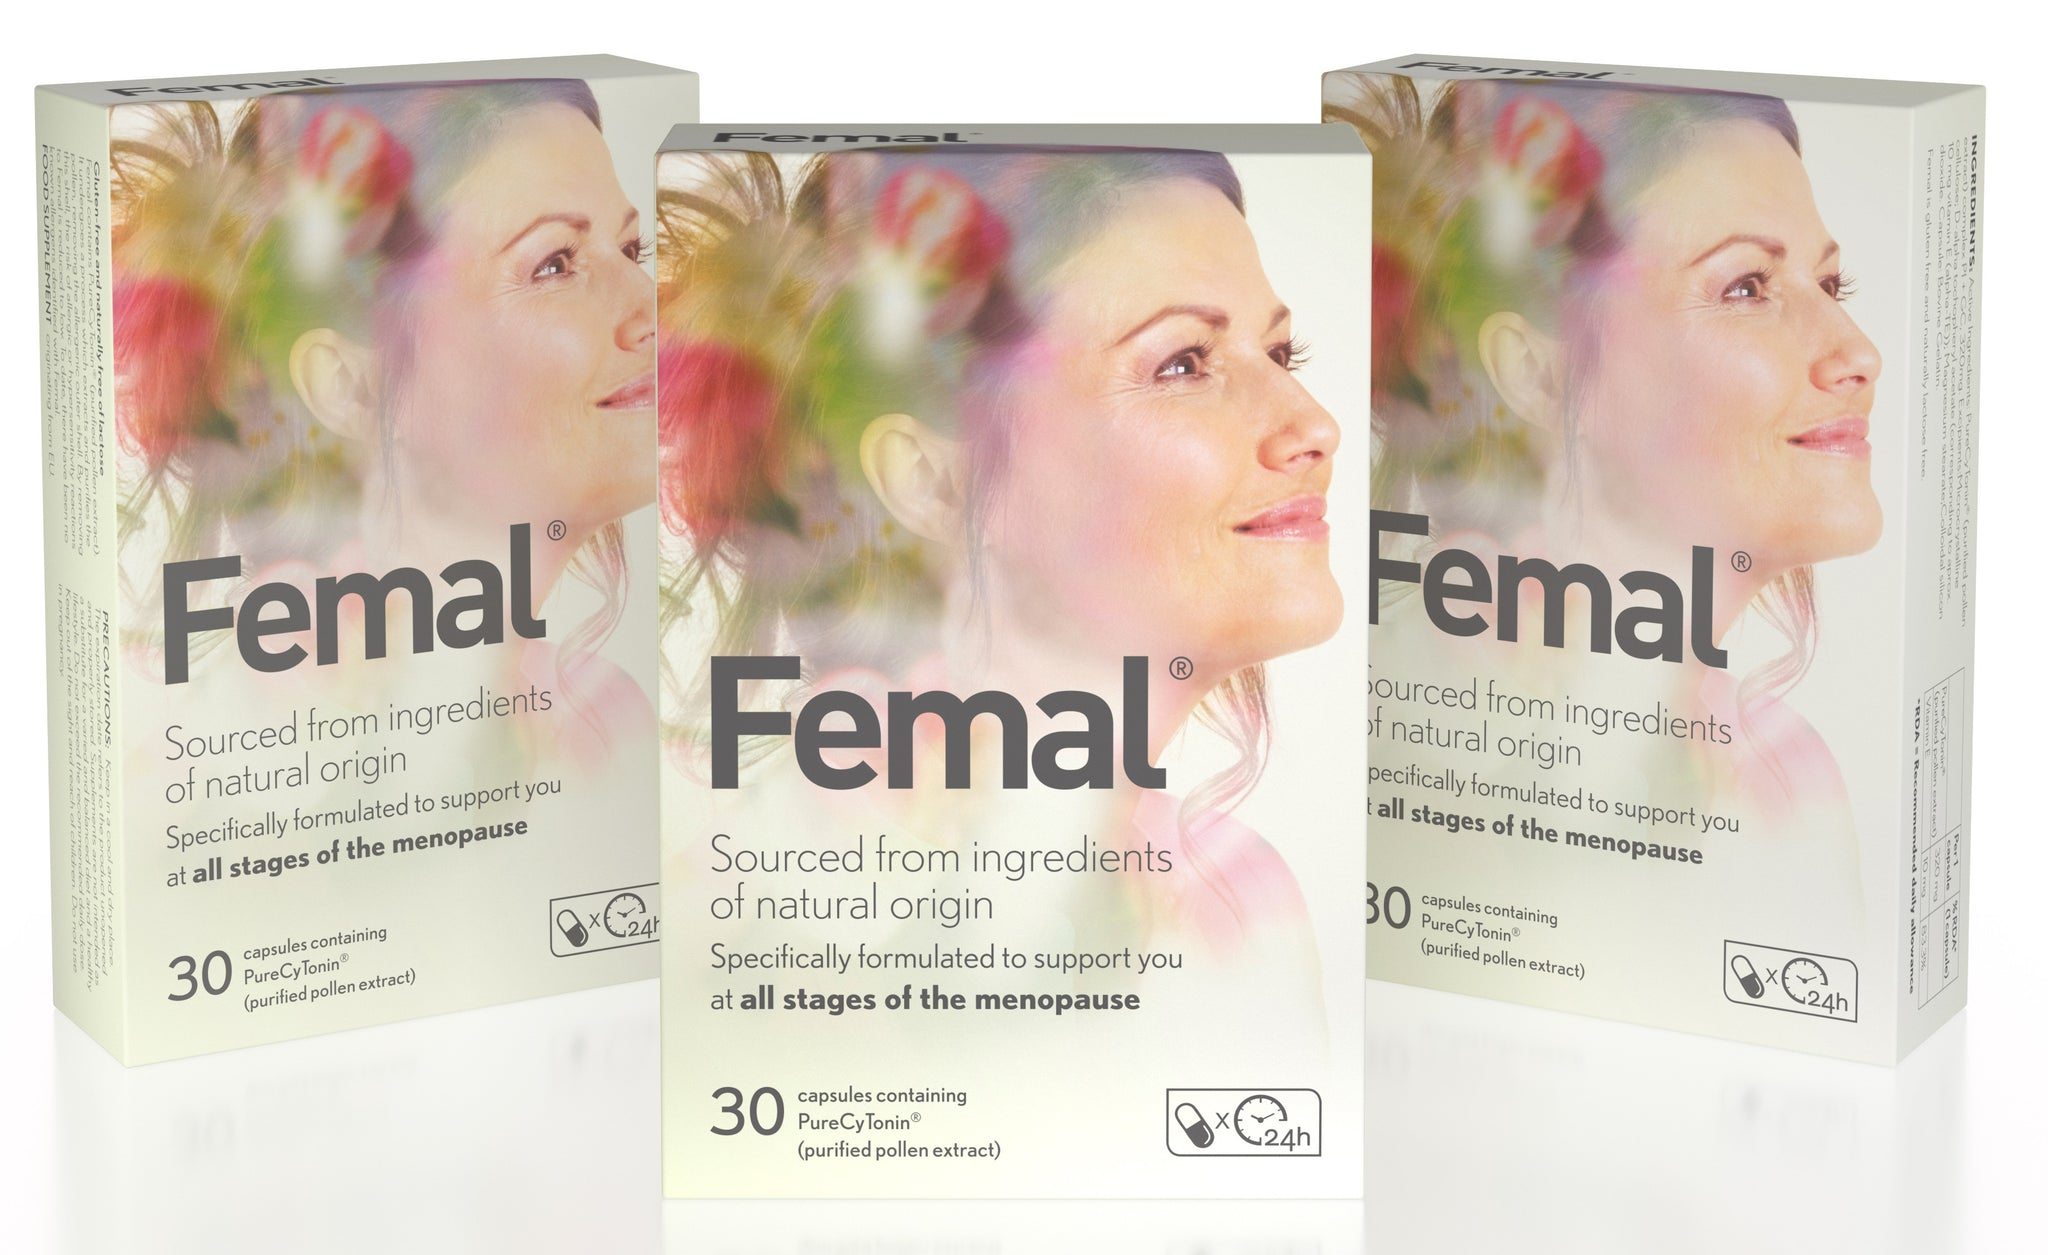 Femal Quarterly Subscription - 3 Packs Delivered Every 85 Days